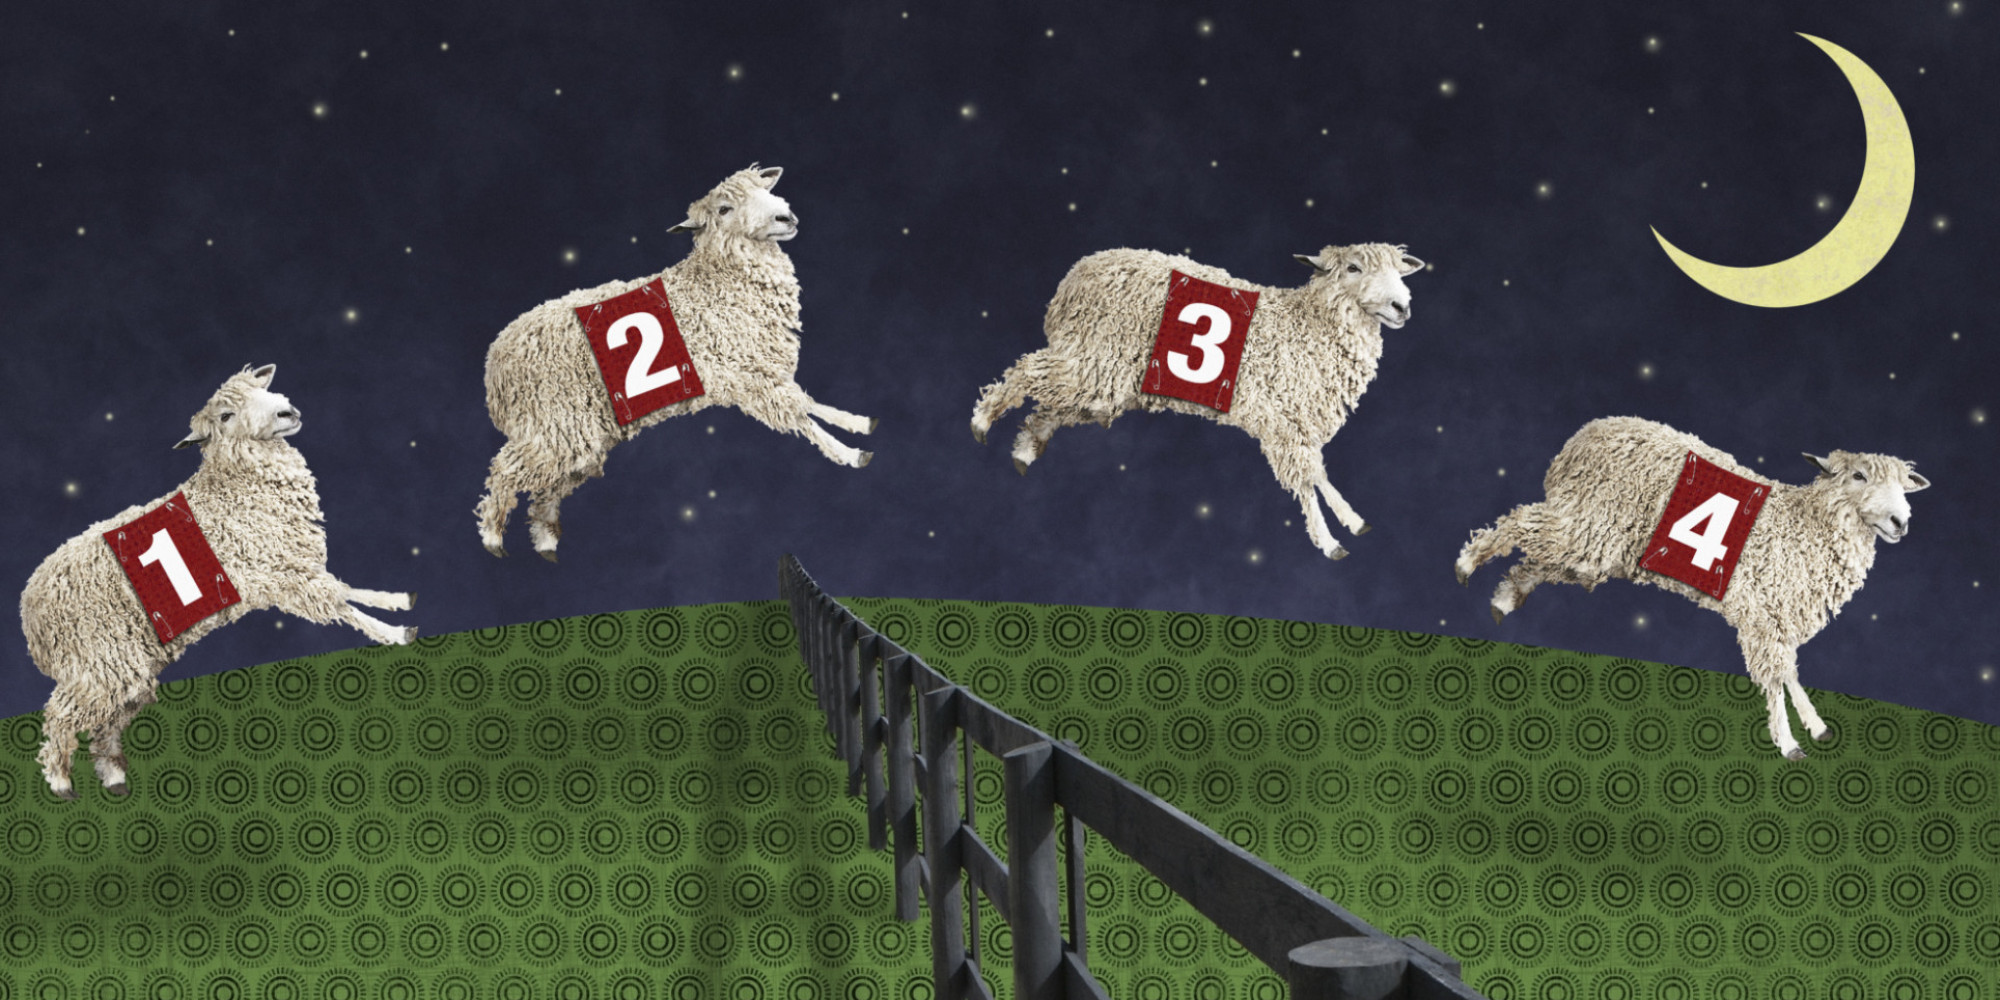 Doctor Hamer: Counting sheep